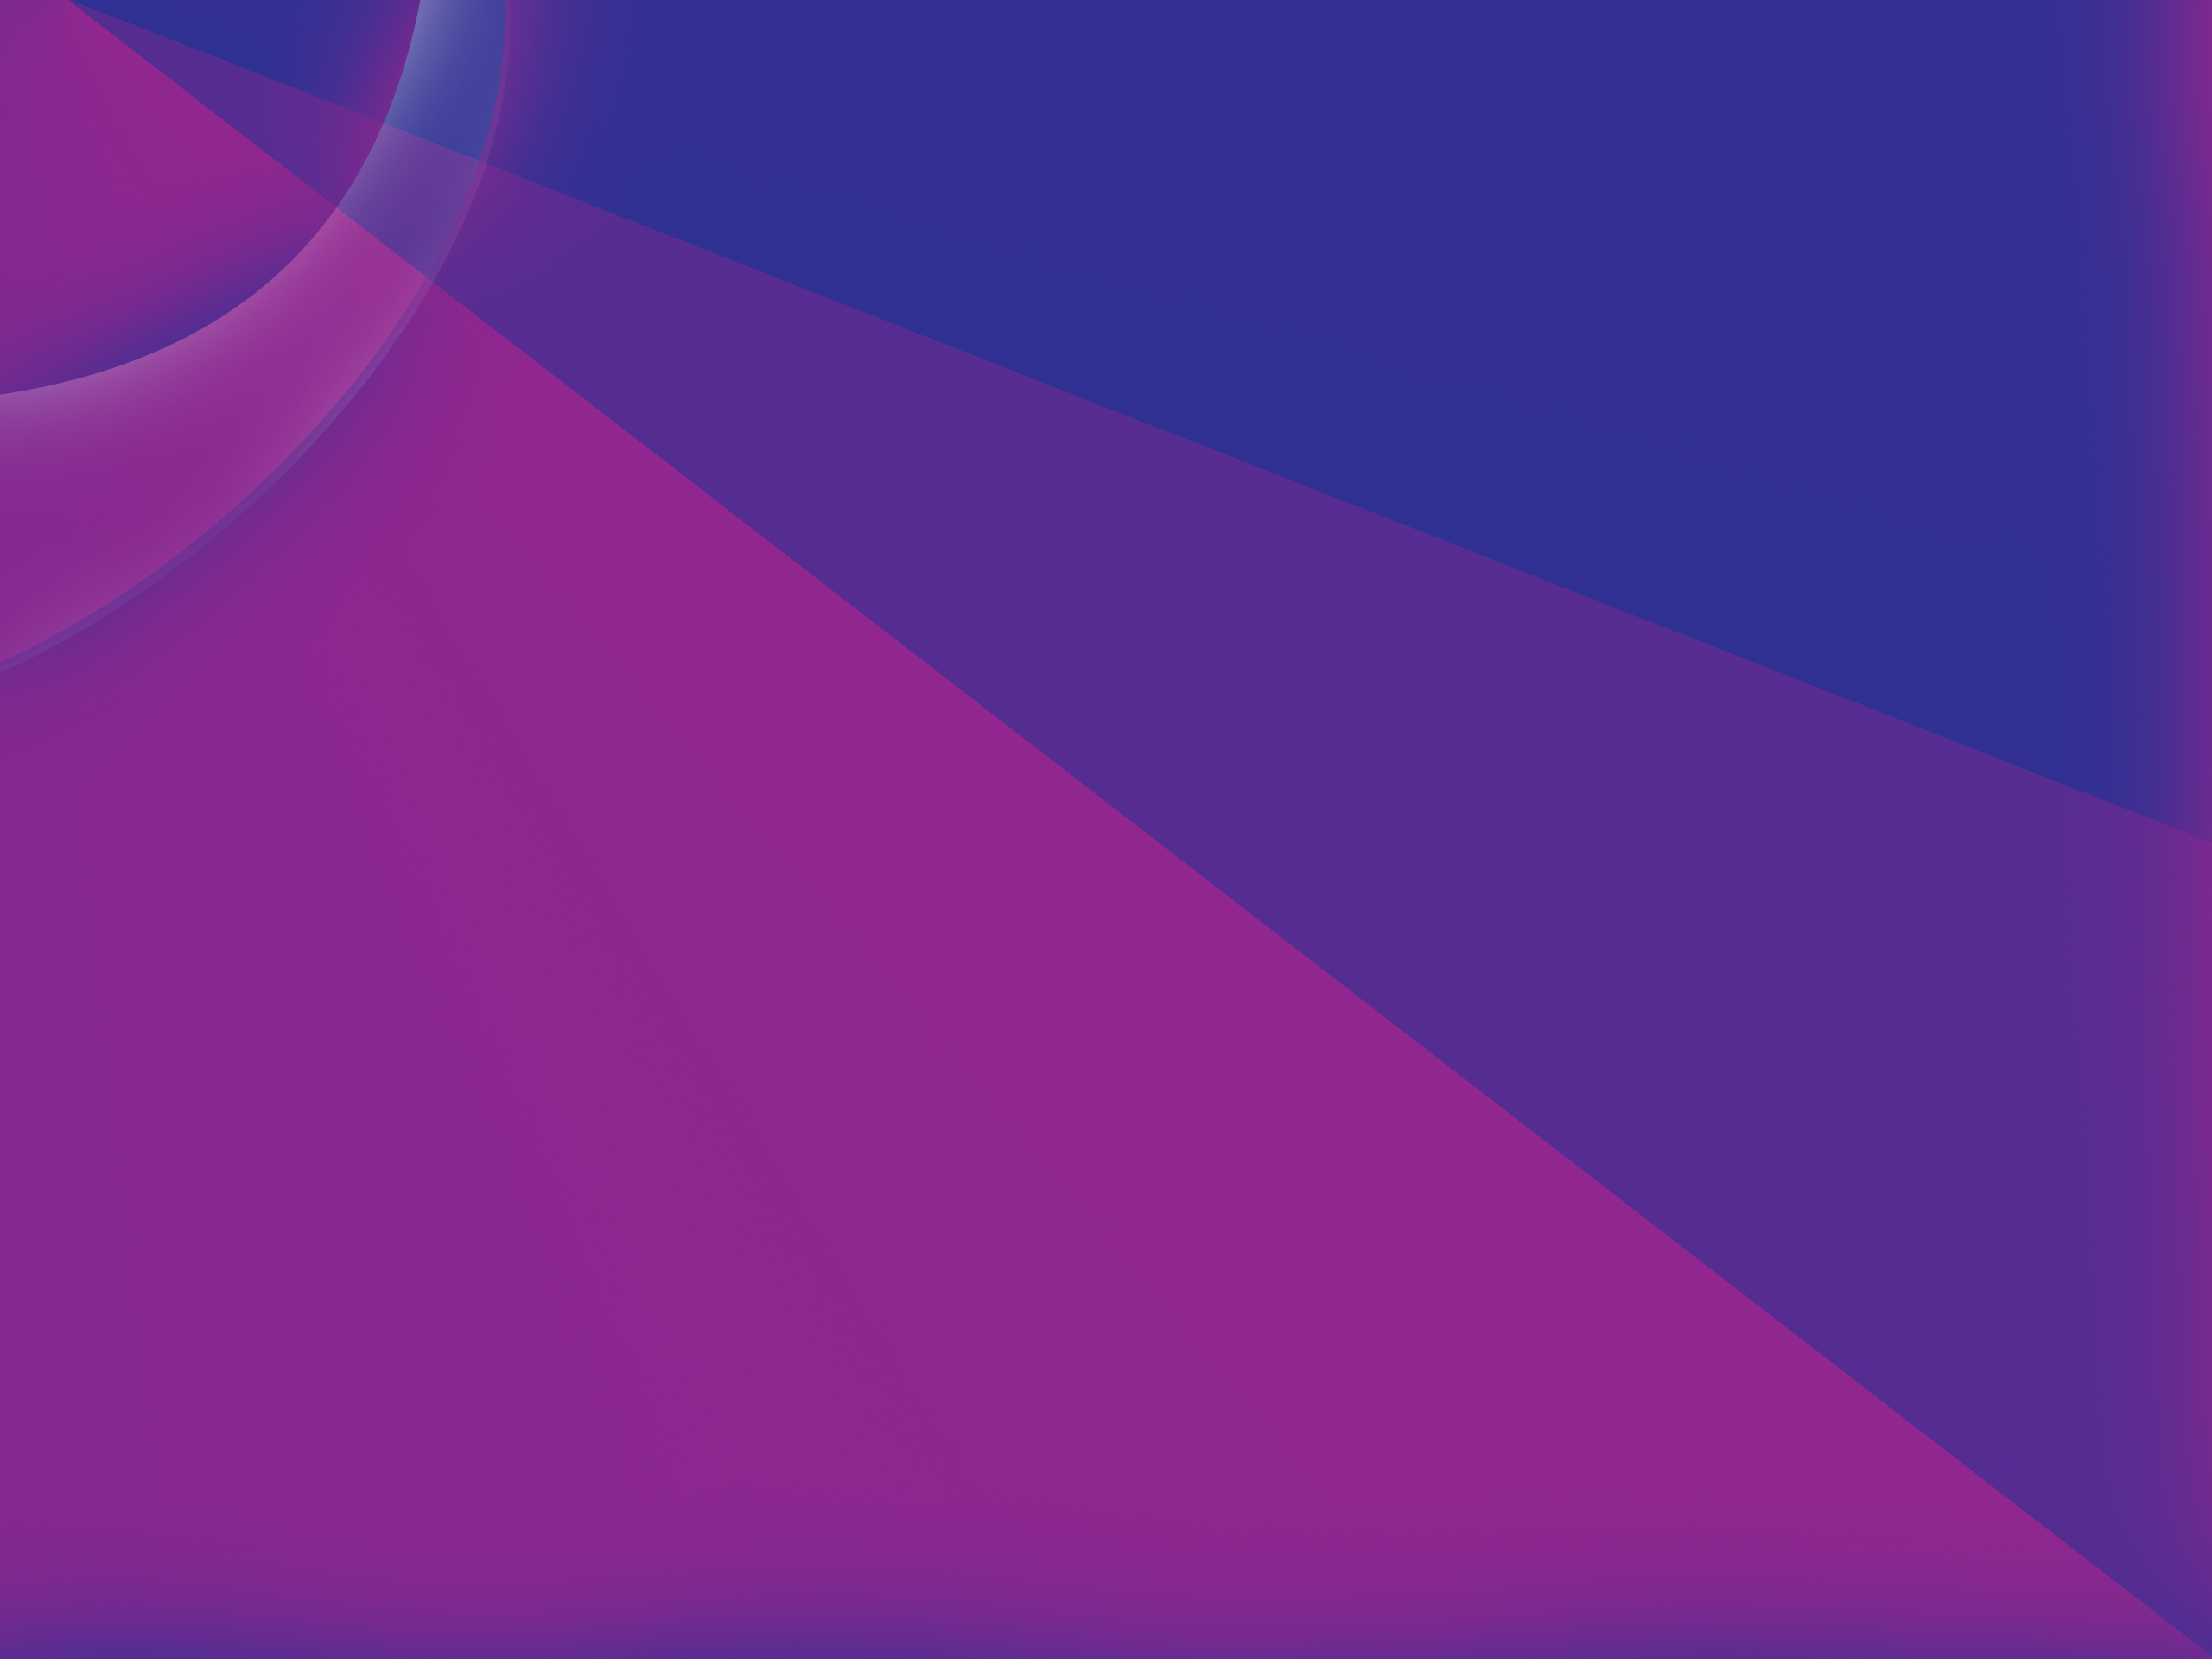 wallpaper purple and blue by too fast customization wallpaper abstract 2560x1920